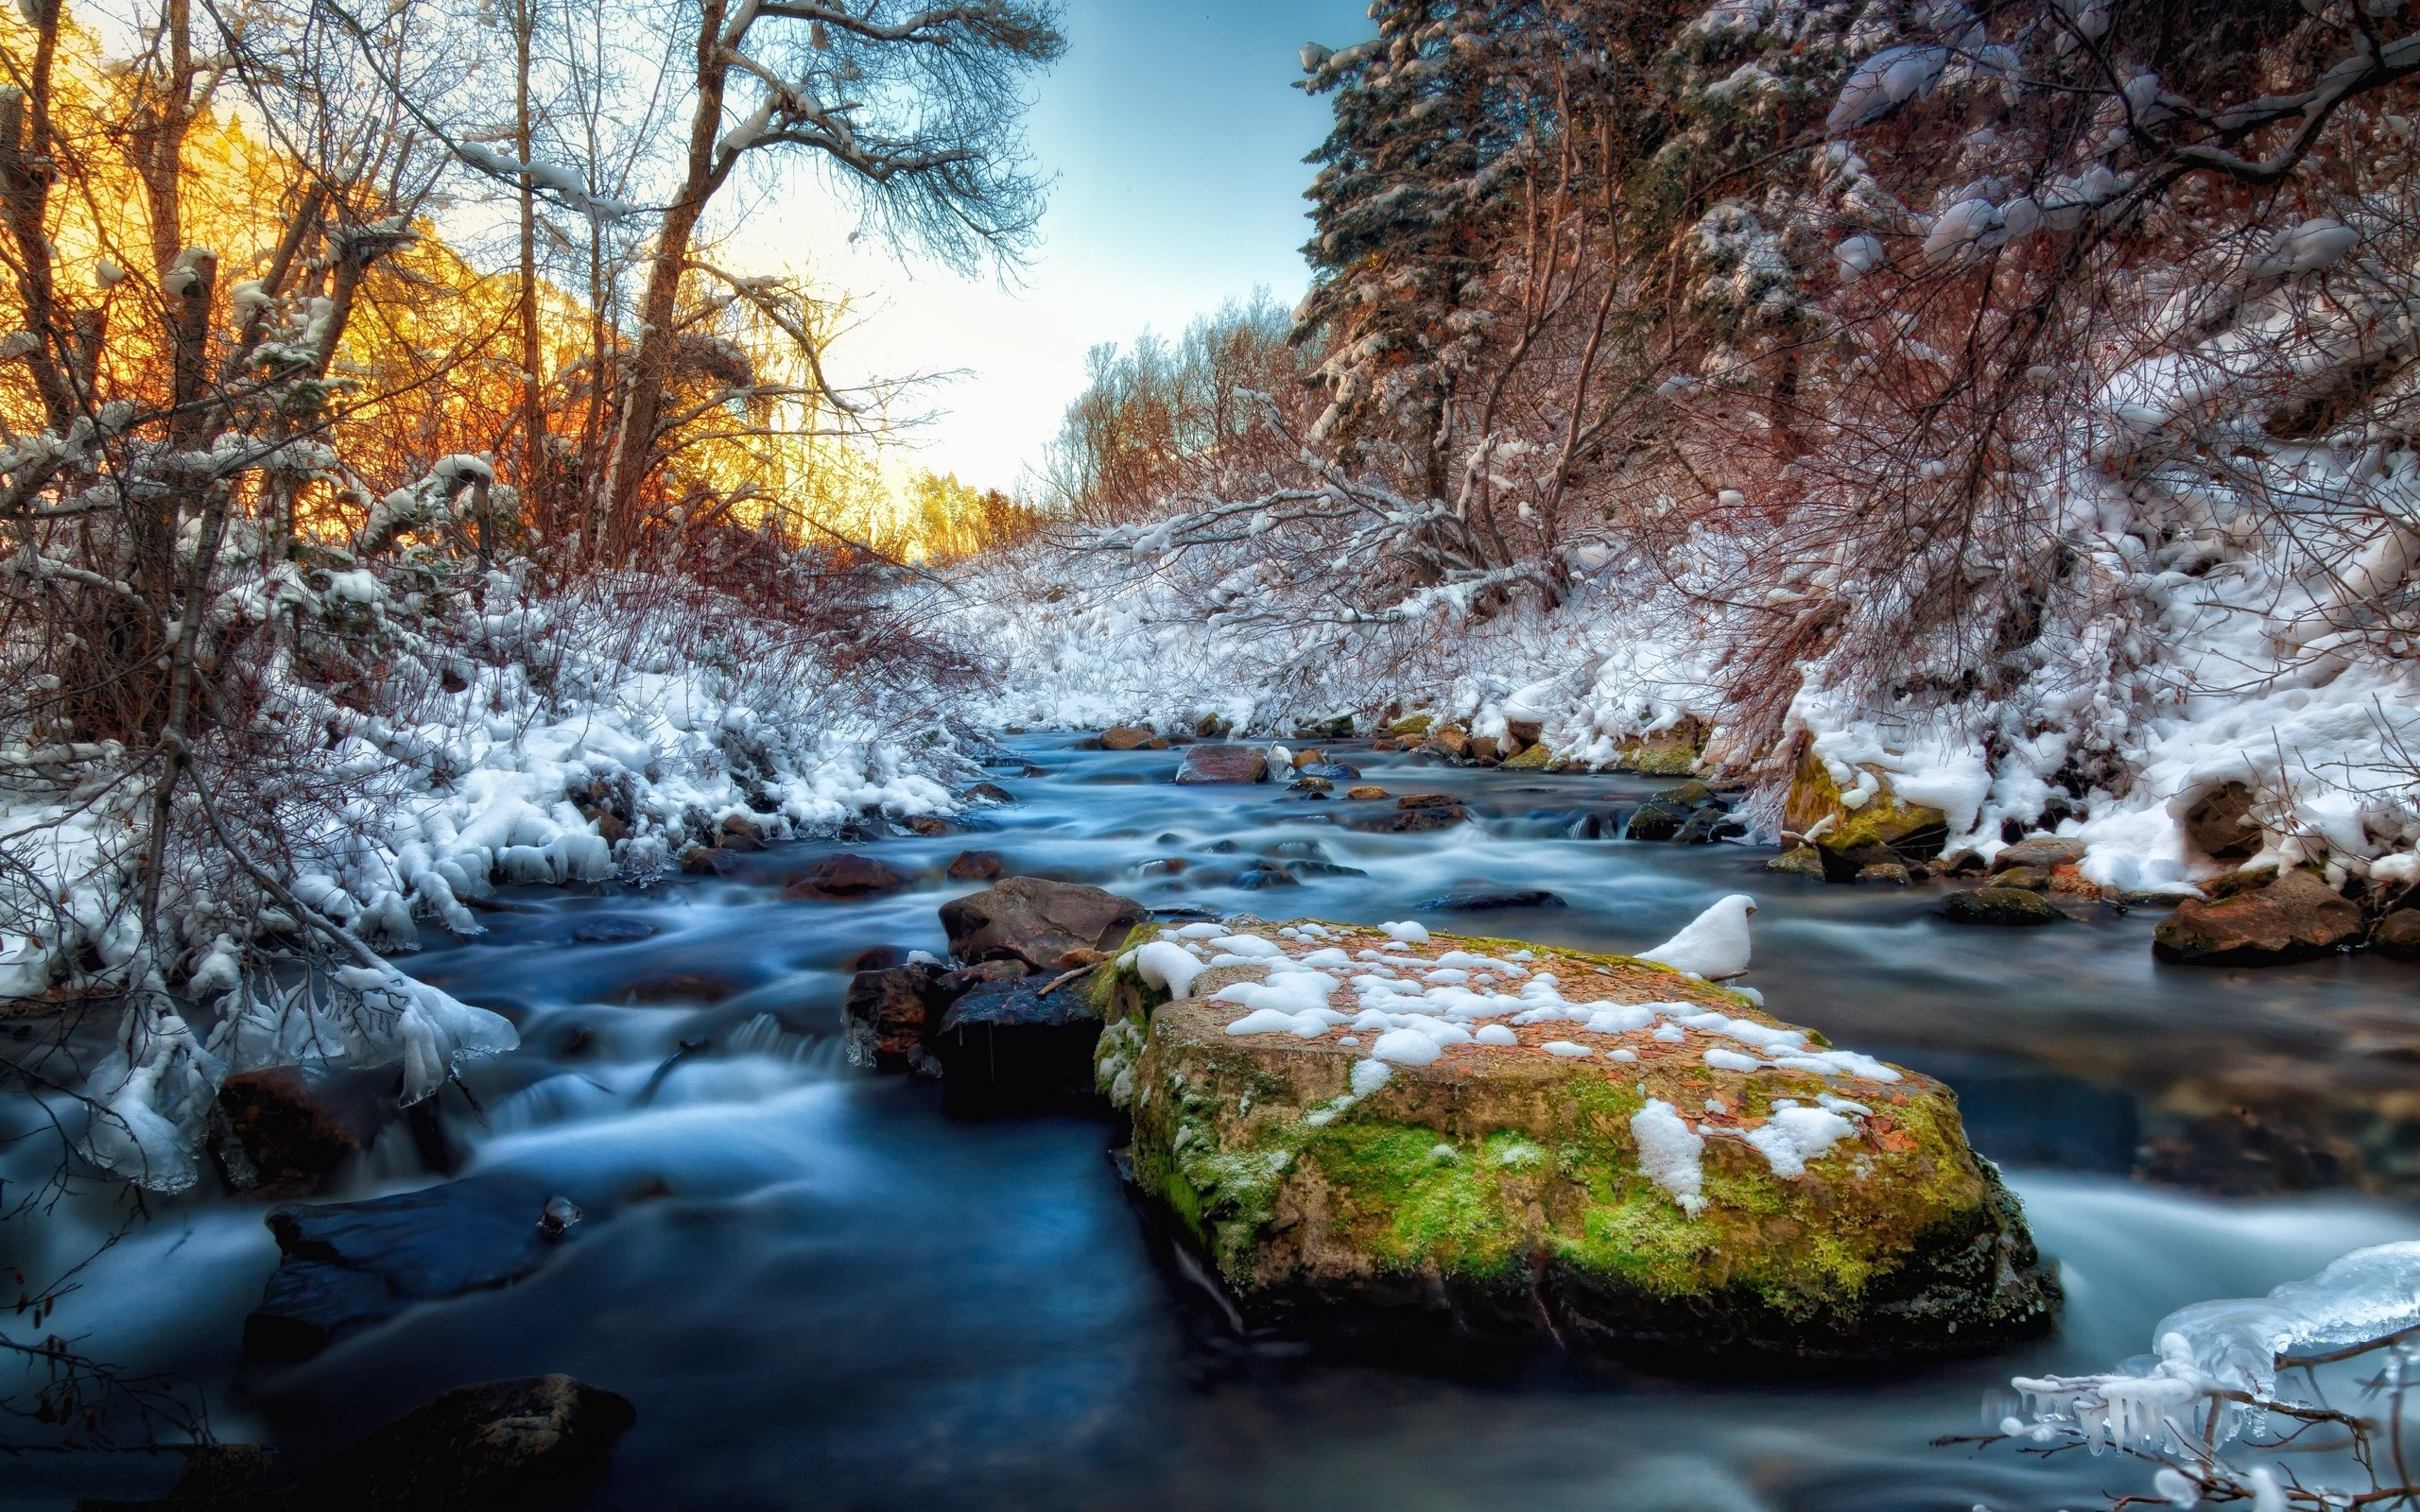 4k Hdr Wallpaper Iphone X River Rocks Snow Stones Water Trees Winter Photography